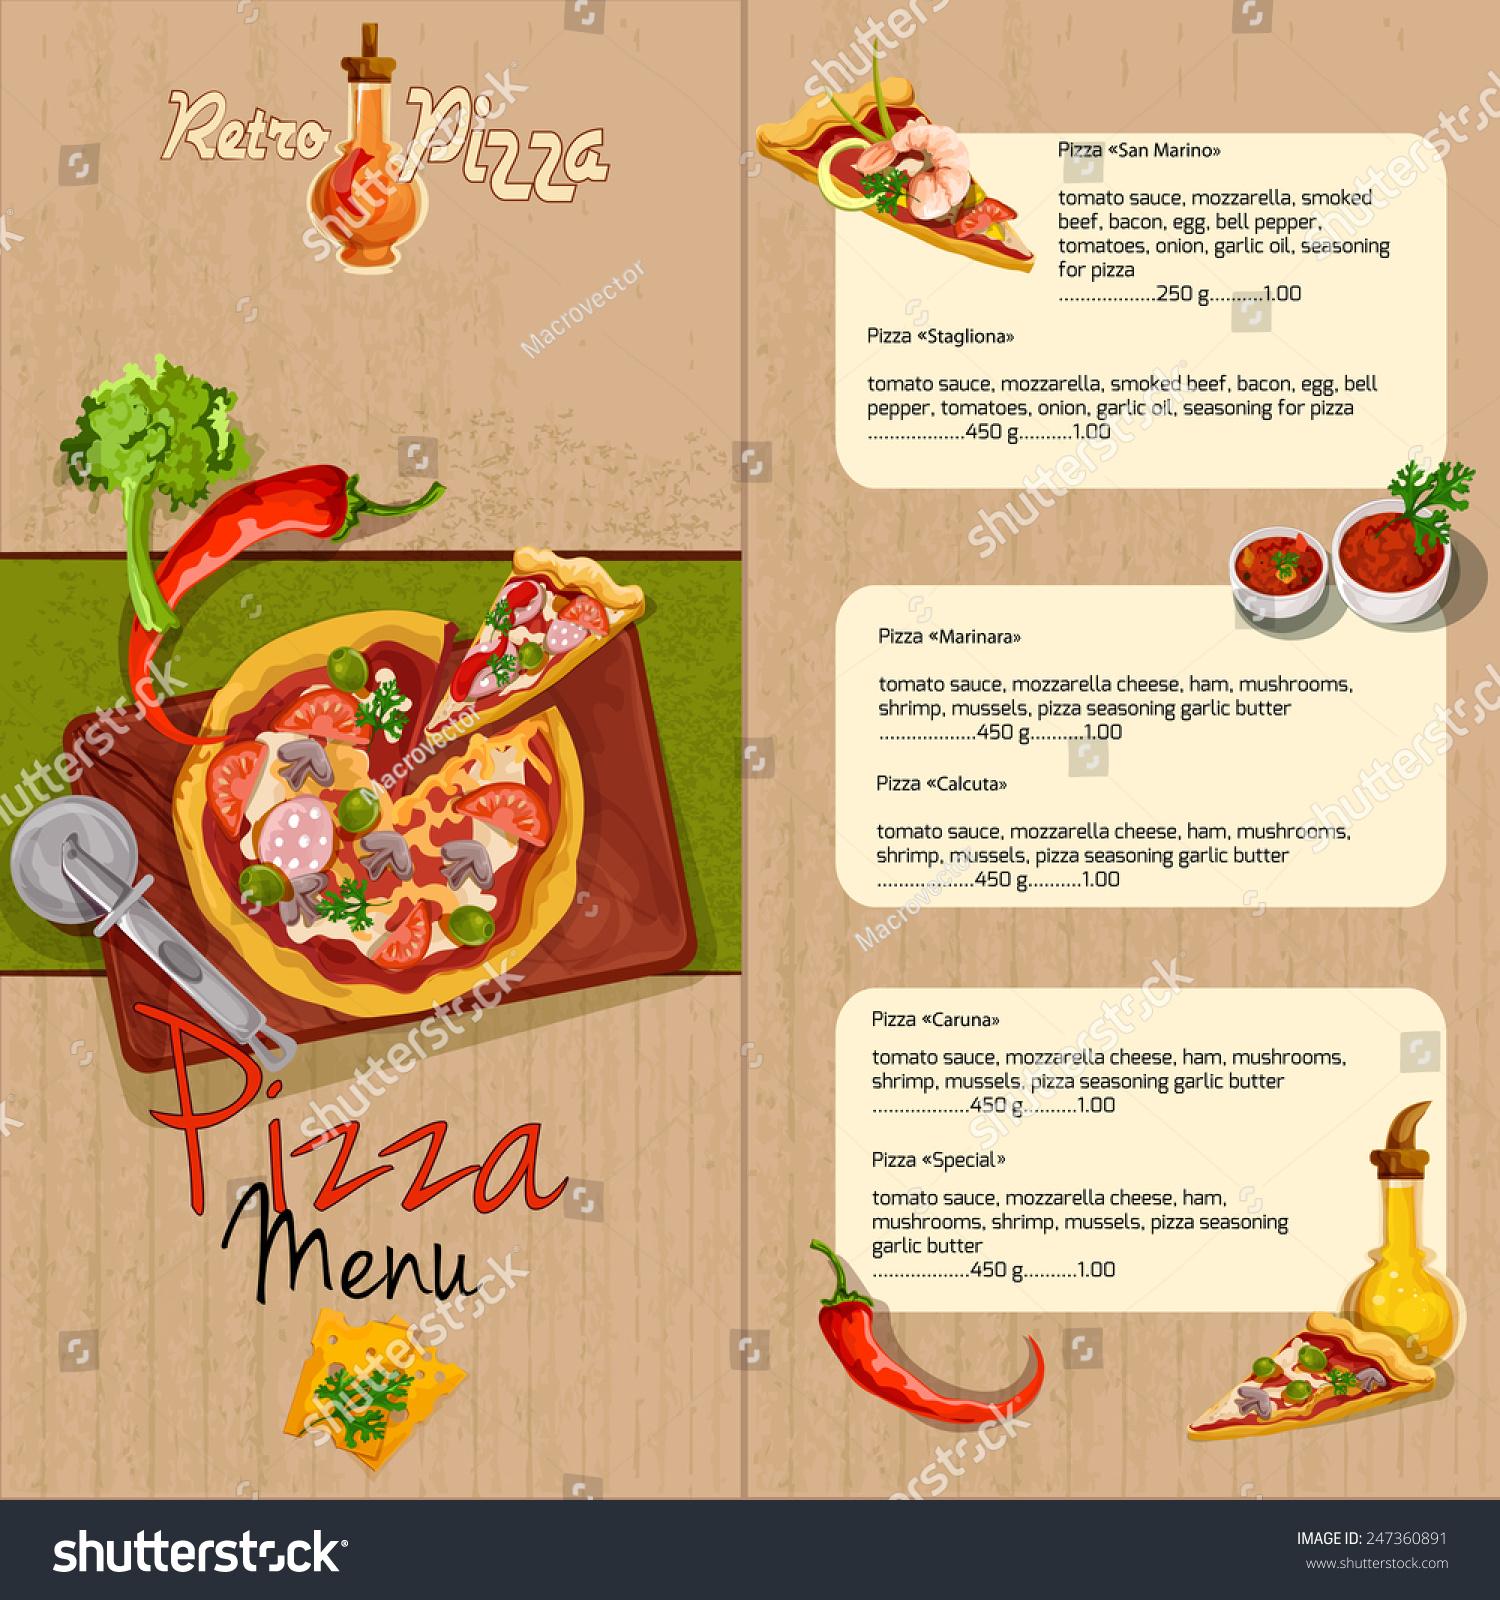 royalty free pizzeria pizza restaurant menu template 247360891